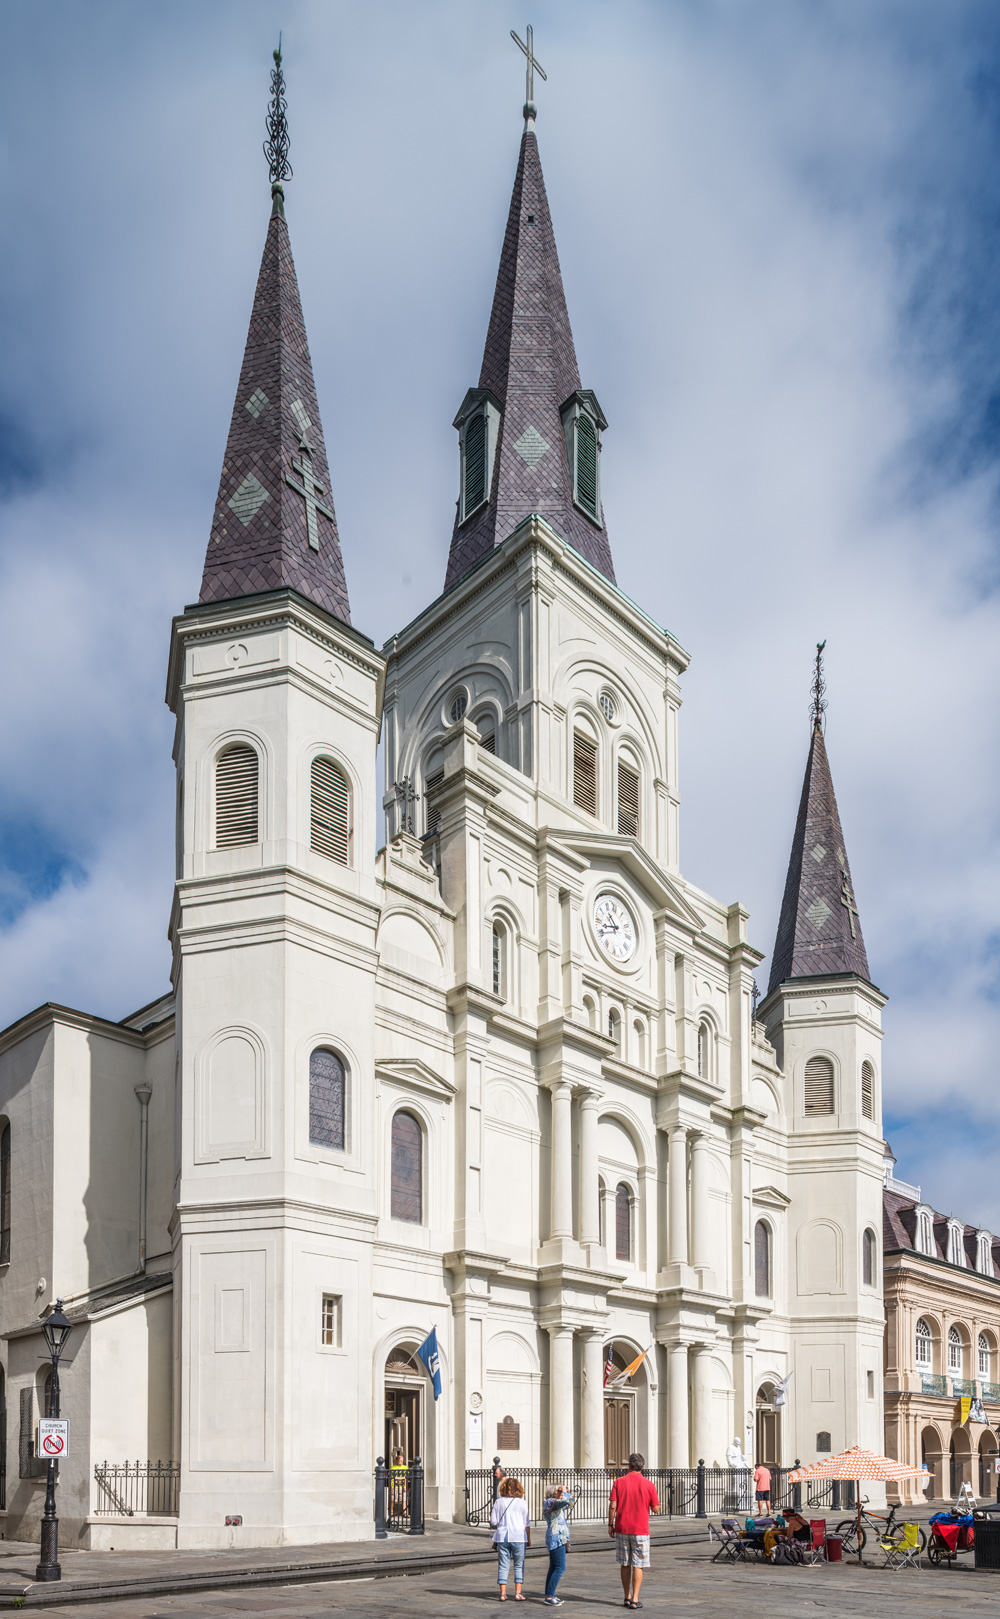 Architectural-Photographer-Serhii-Chrucky-New-Orleans-French-Quarter_02.jpg